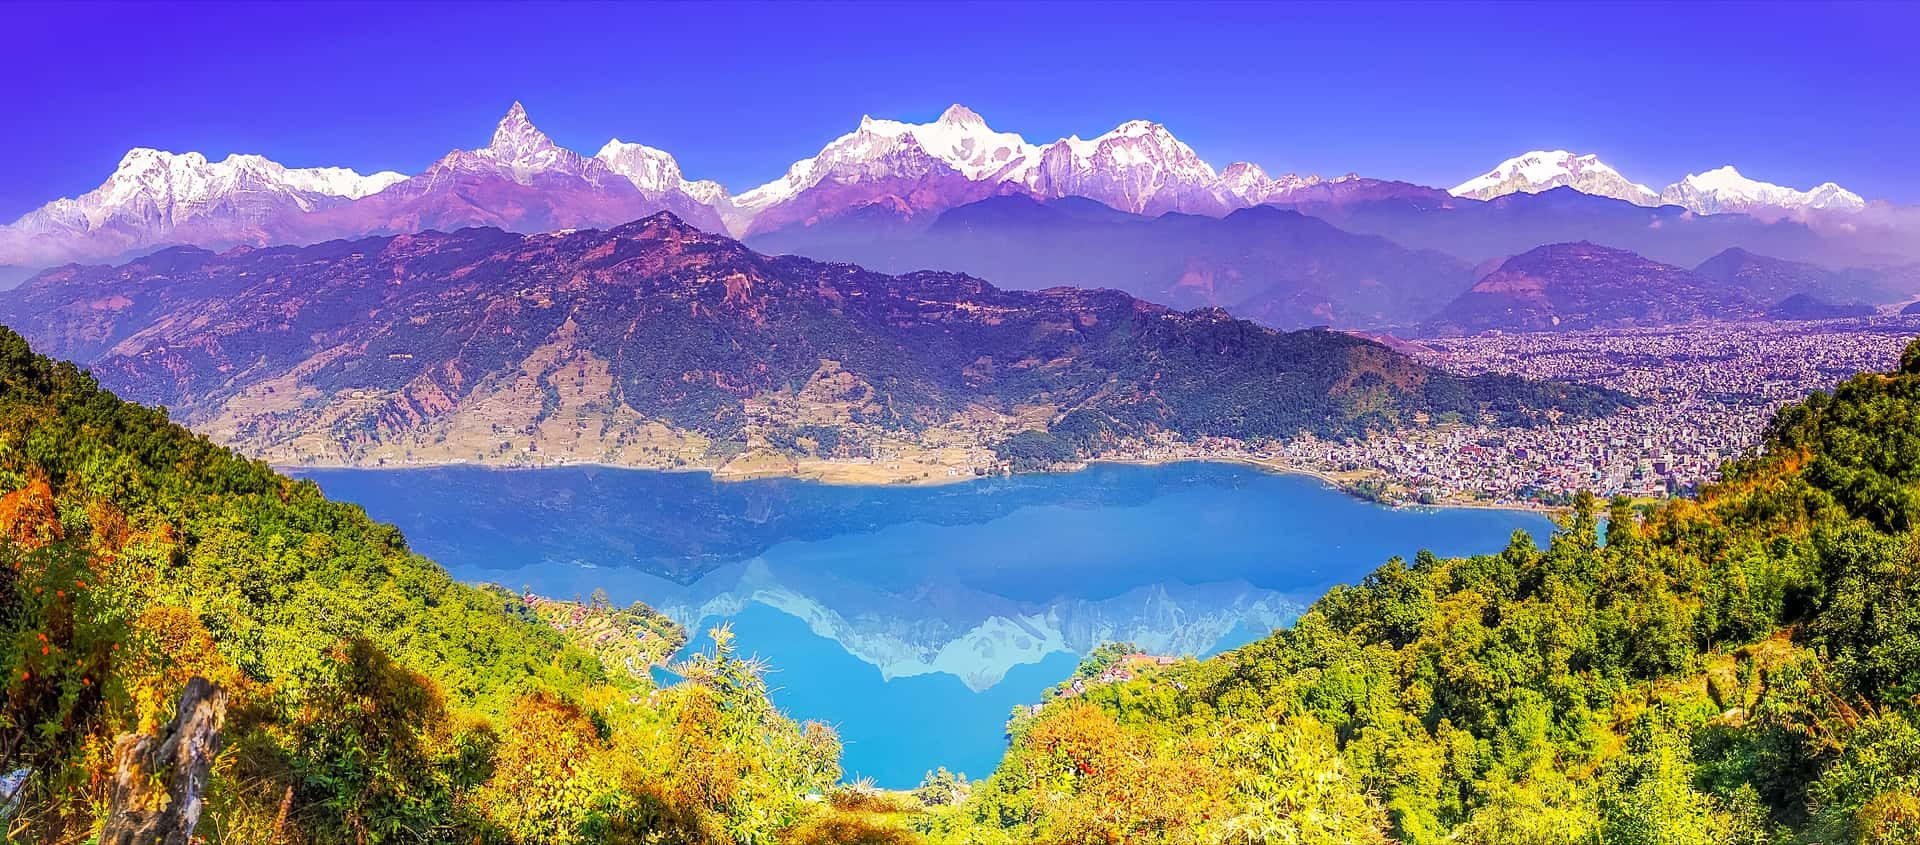 Pokhara tour, Pokhara from the top of Stupa Hills